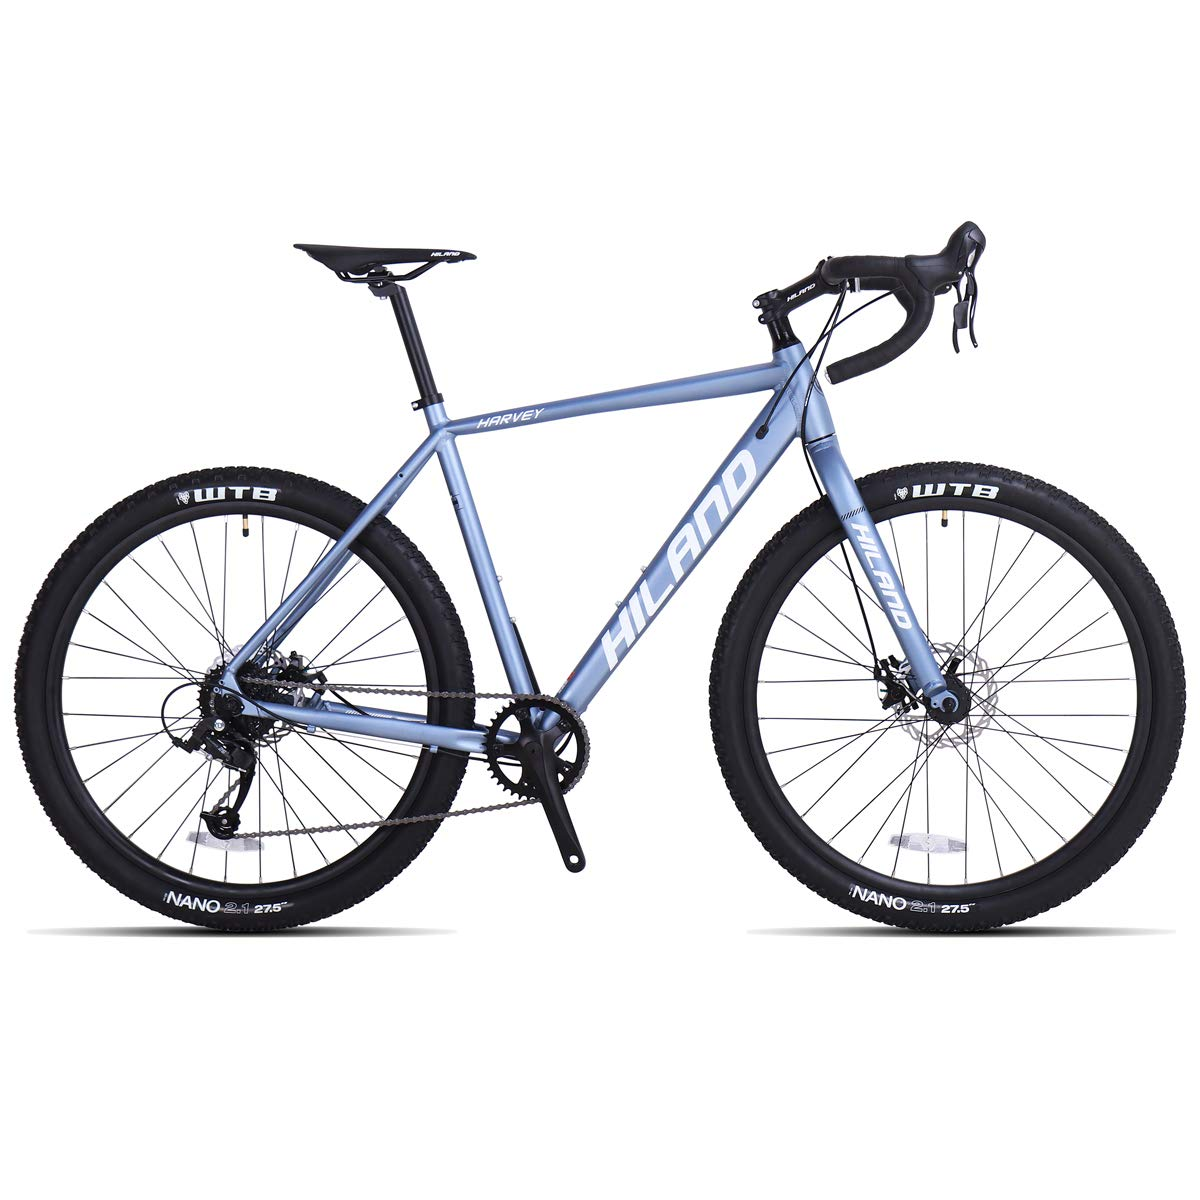 Hiland Gravel Bike for Men and Women Road Adventure Cyclocross Adult Teenager Youth Boys Girls Sport Bicycle, 650B Wheels 24 speeds Bikes Blue 58cm by HH HILAND